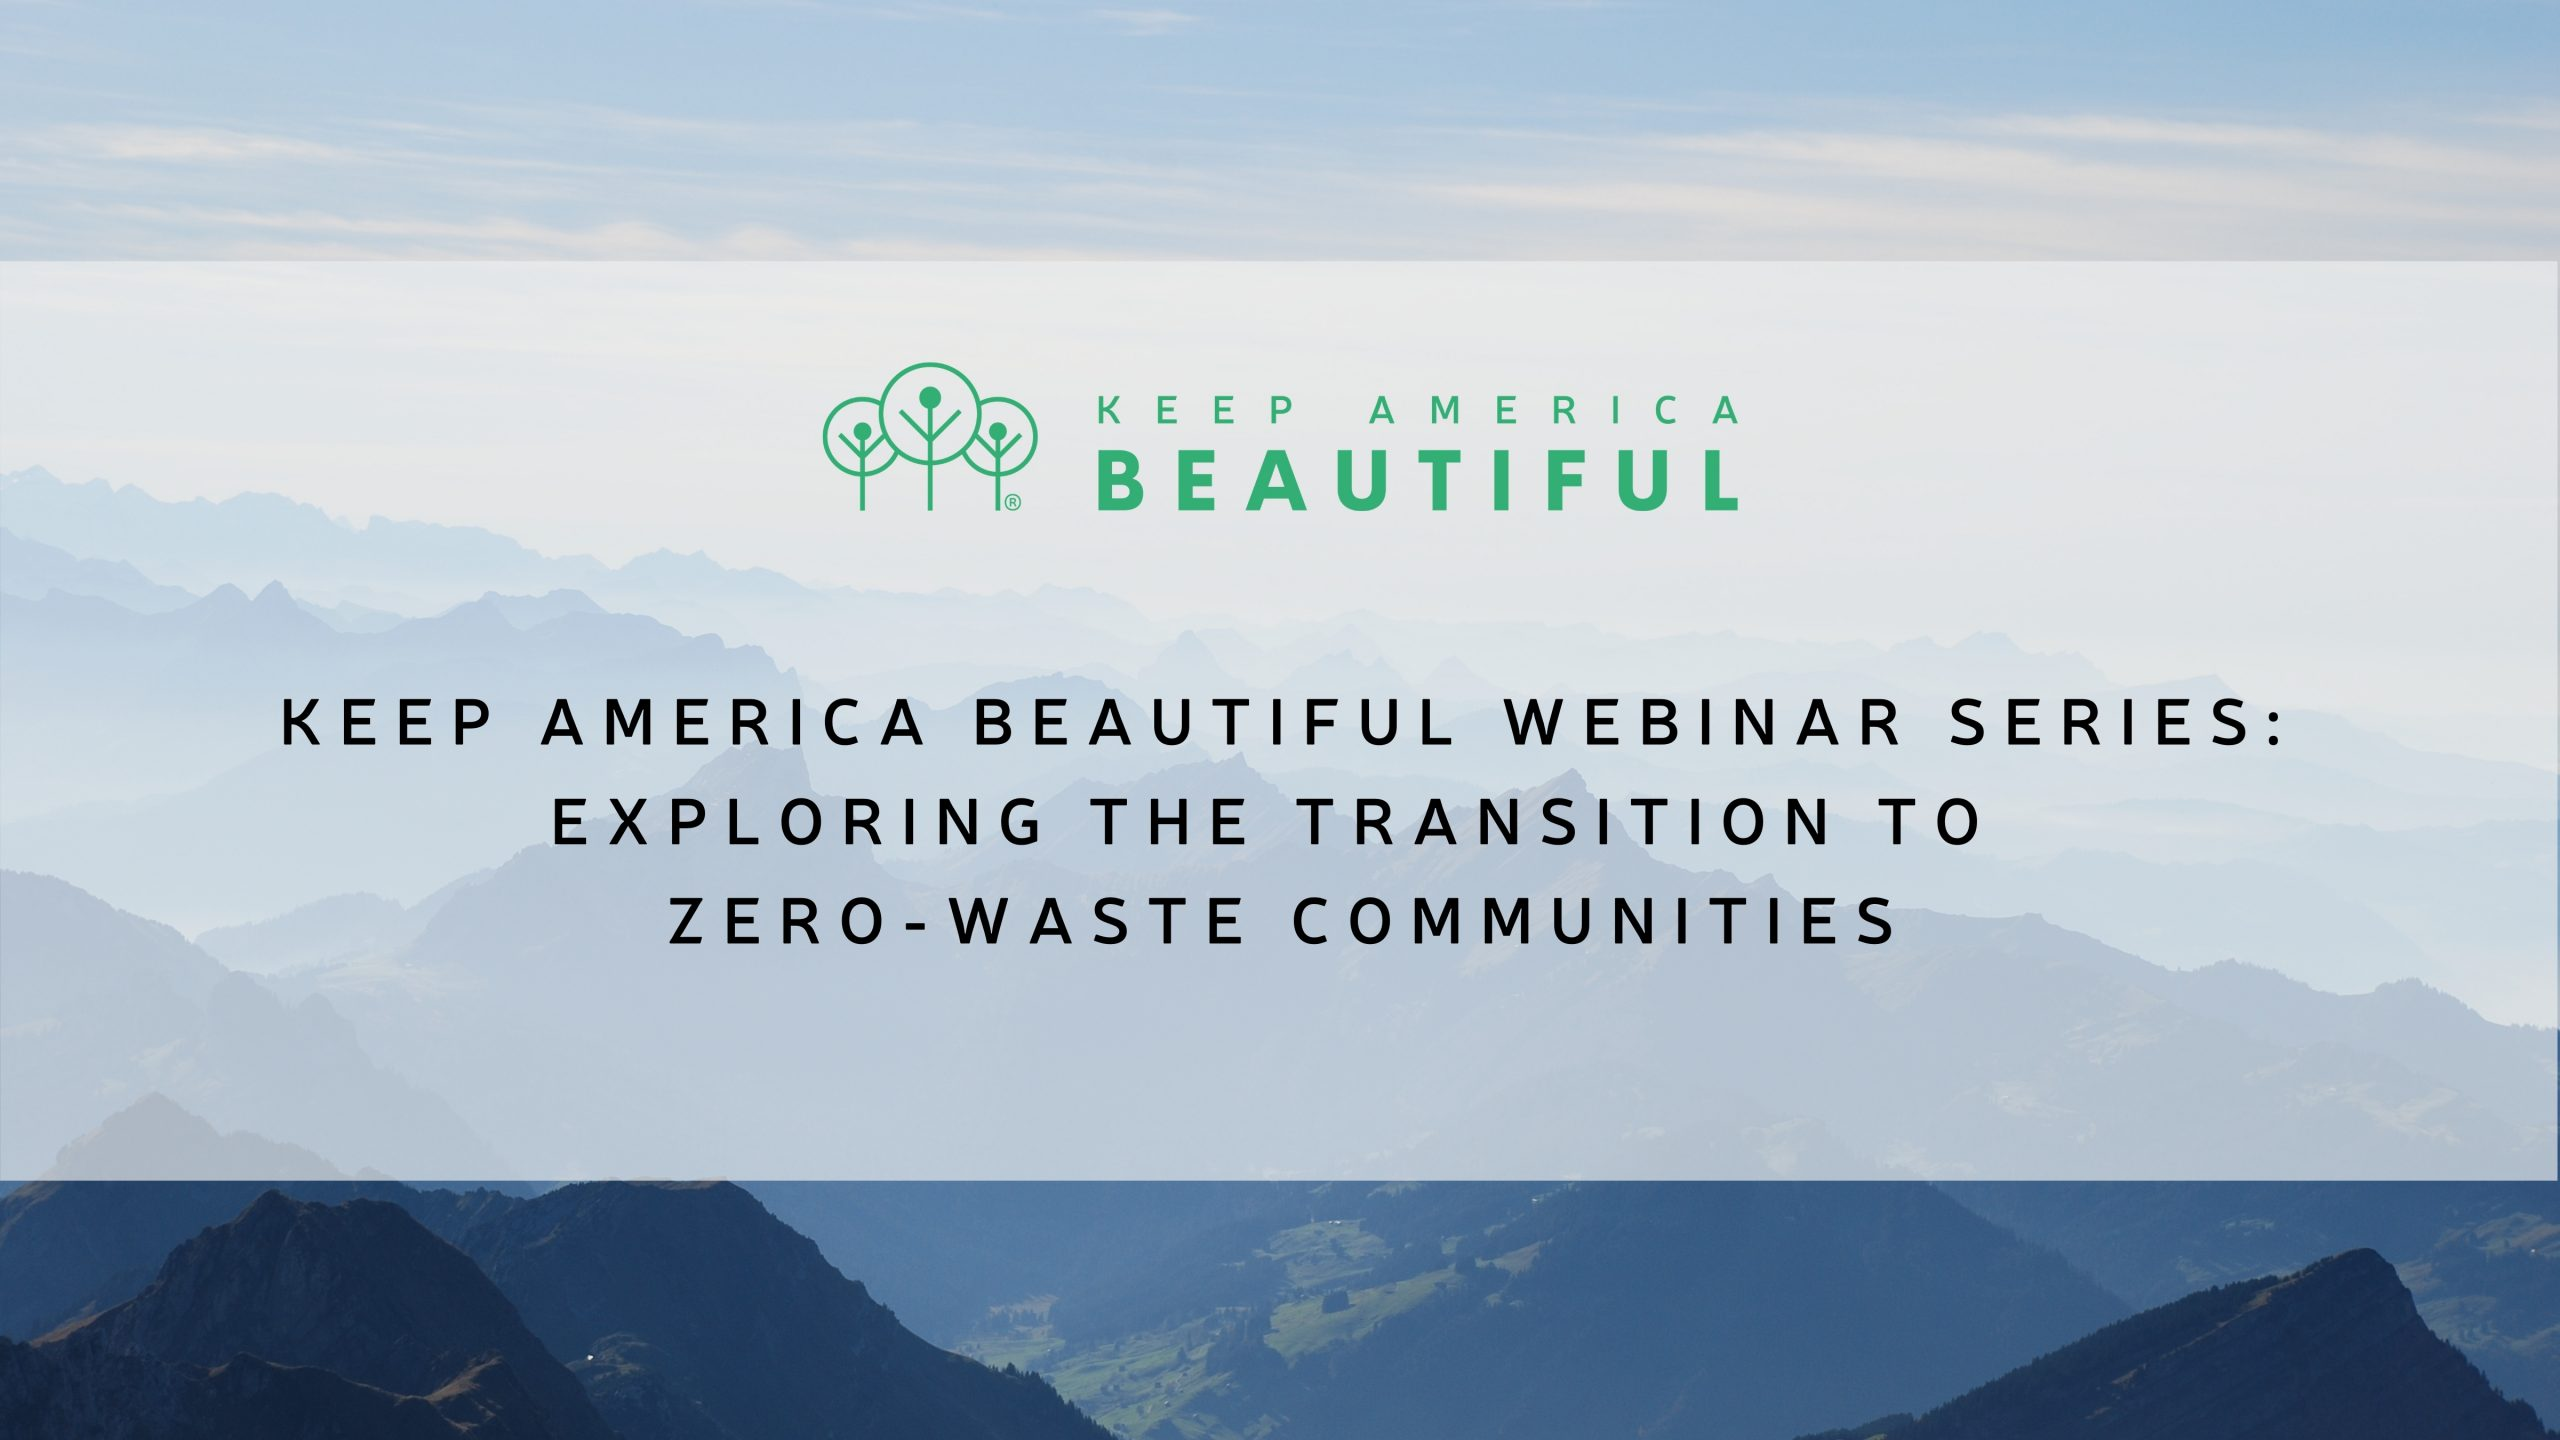 Keep America Beautiful Launches Webinar Series on Zero-Waste Communities